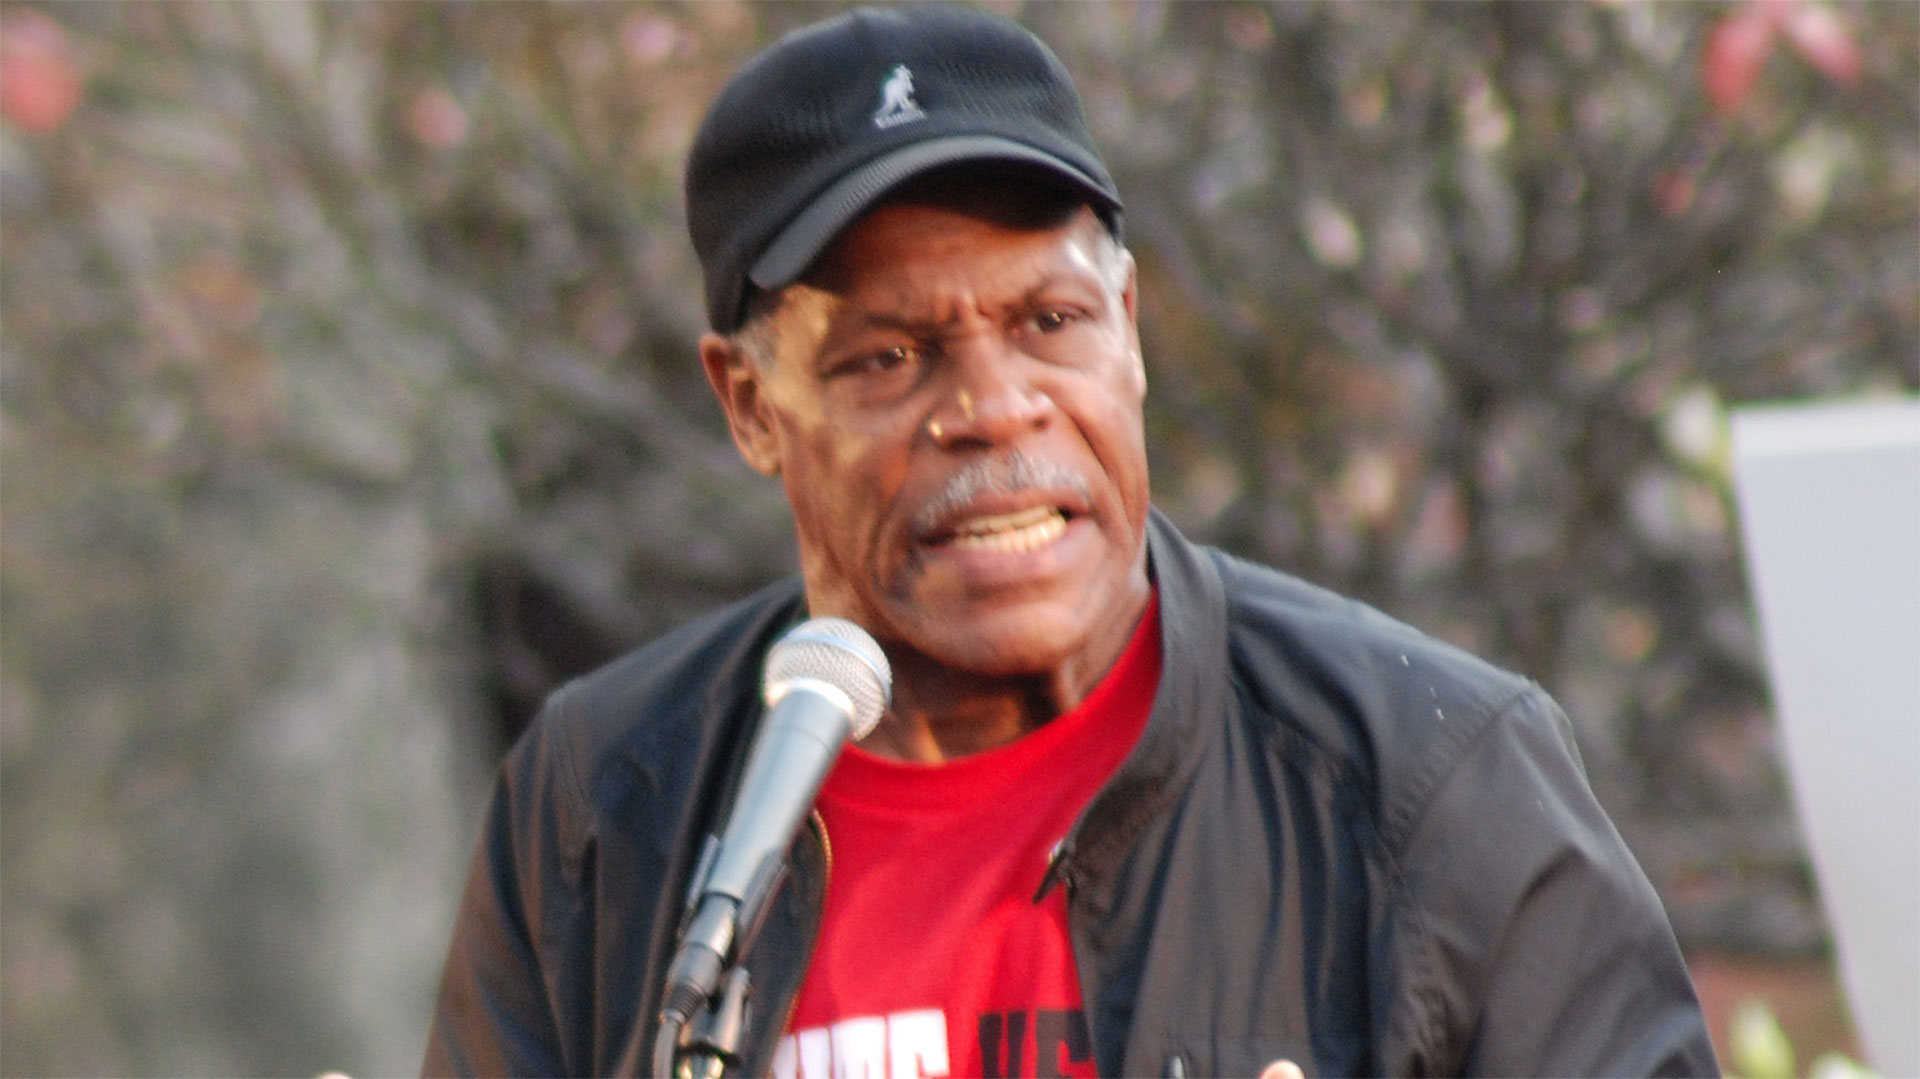 Danny Glover at the Writer's Guild of America East Solidarity Rally in Washington Square (2007)